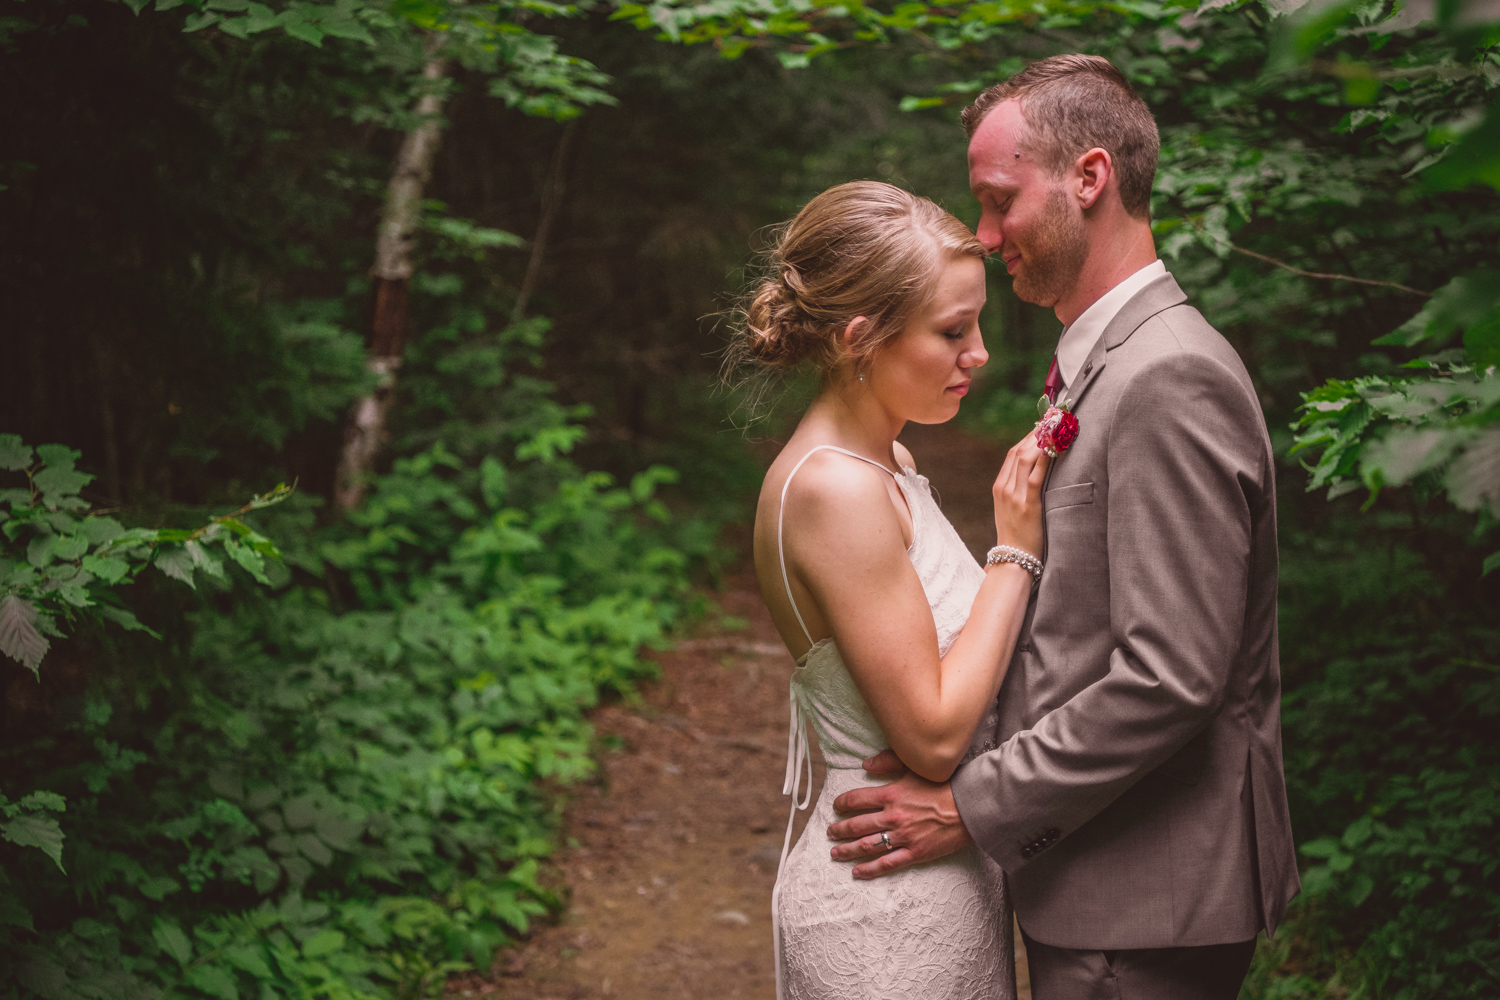 A beautiful moment between the two newlyweds in the woods in New Brunswick.